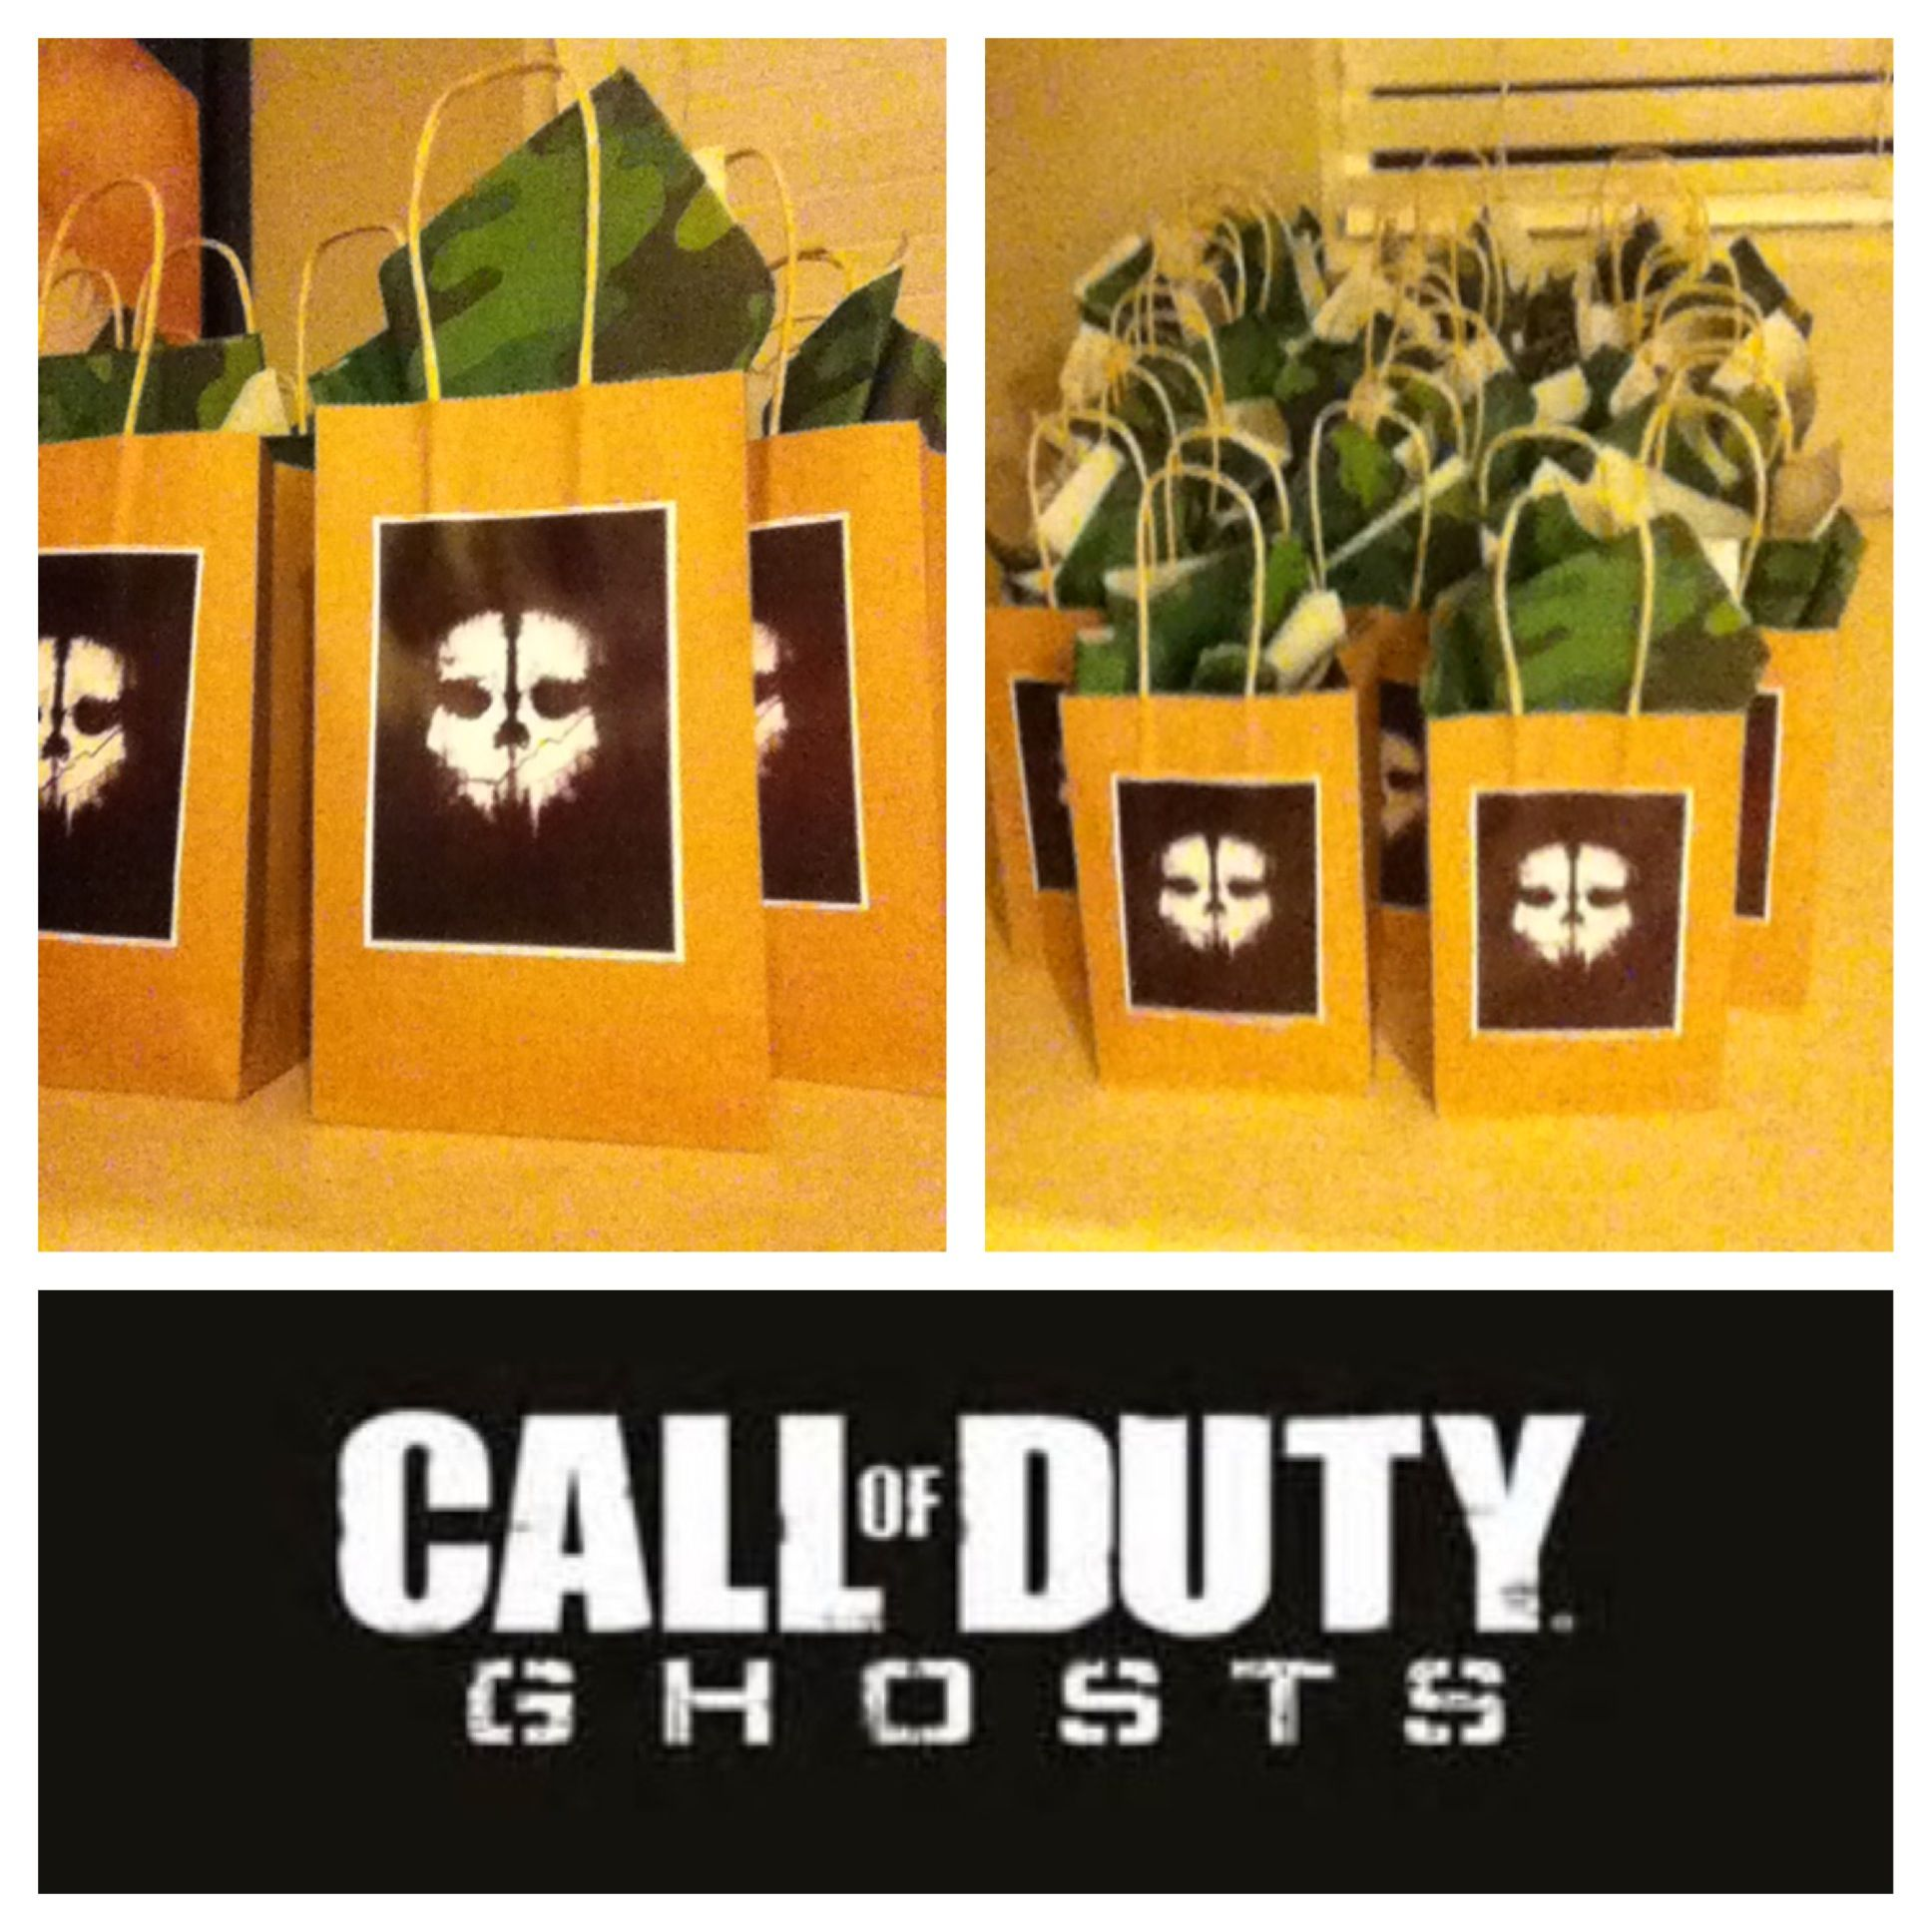 Call of duty ghosts birthday goodie bags call of duty birthday call of duty ghosts birthday goodie bags call of duty birthday theme use black white or green bags filmwisefo Image collections